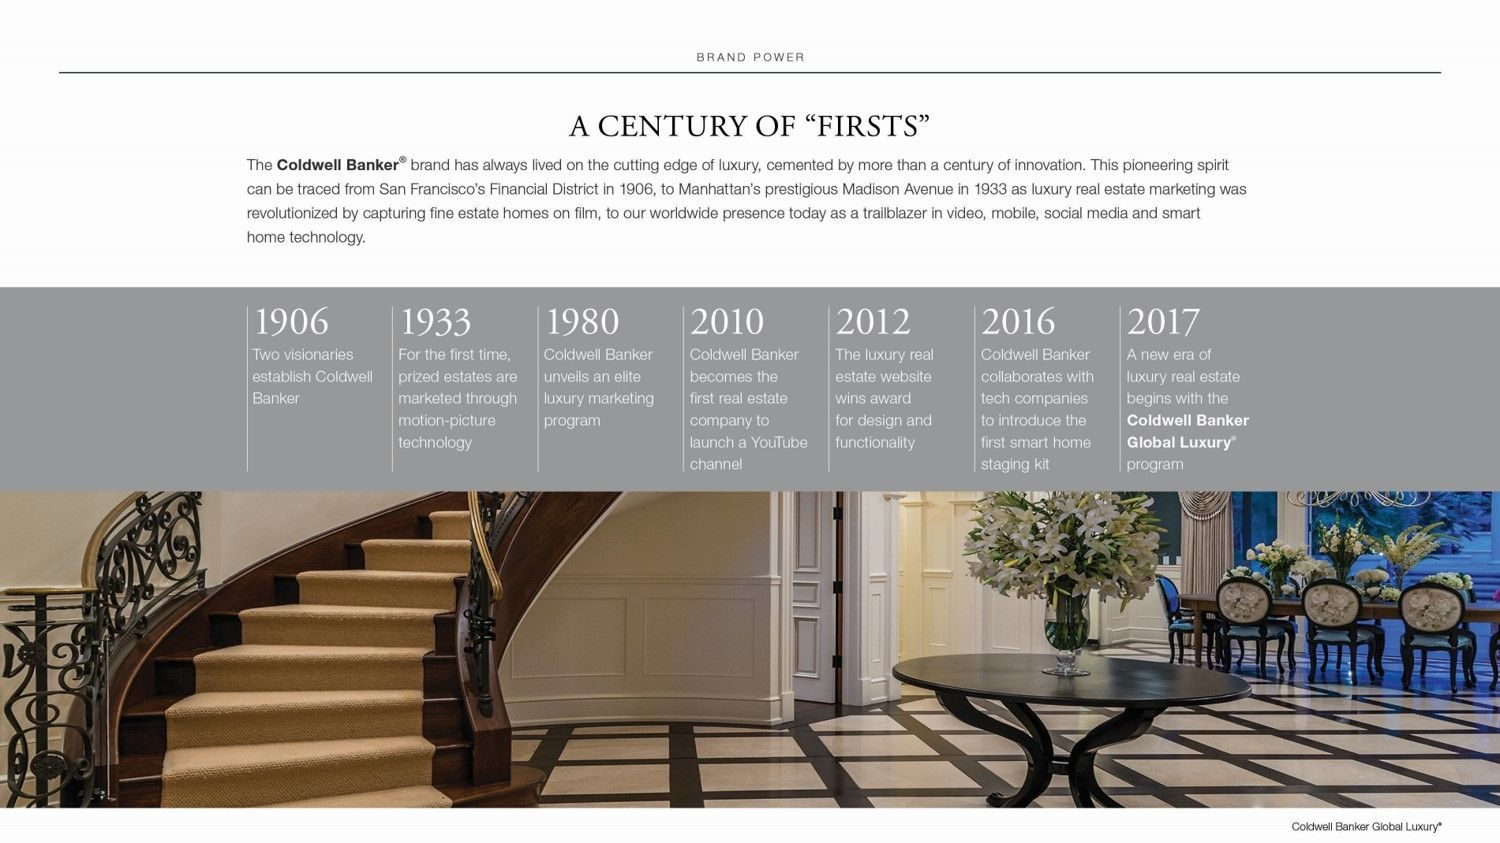 coldwell-banker-global-luxury-a-century-of-firsts